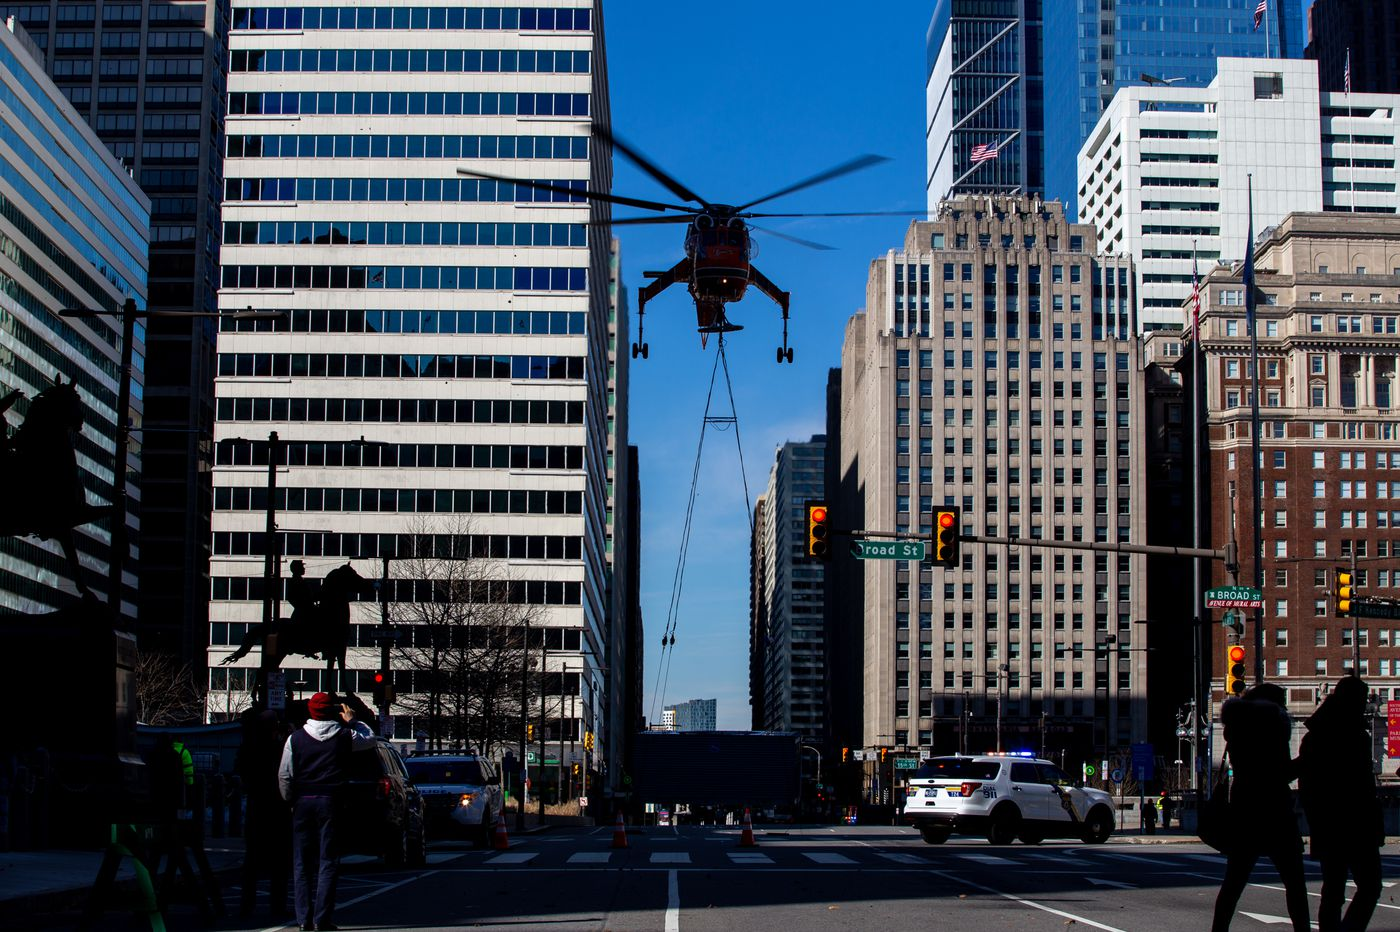 'Pretty crazy': Helicopter disrupts travel, impresses Center City onlookers